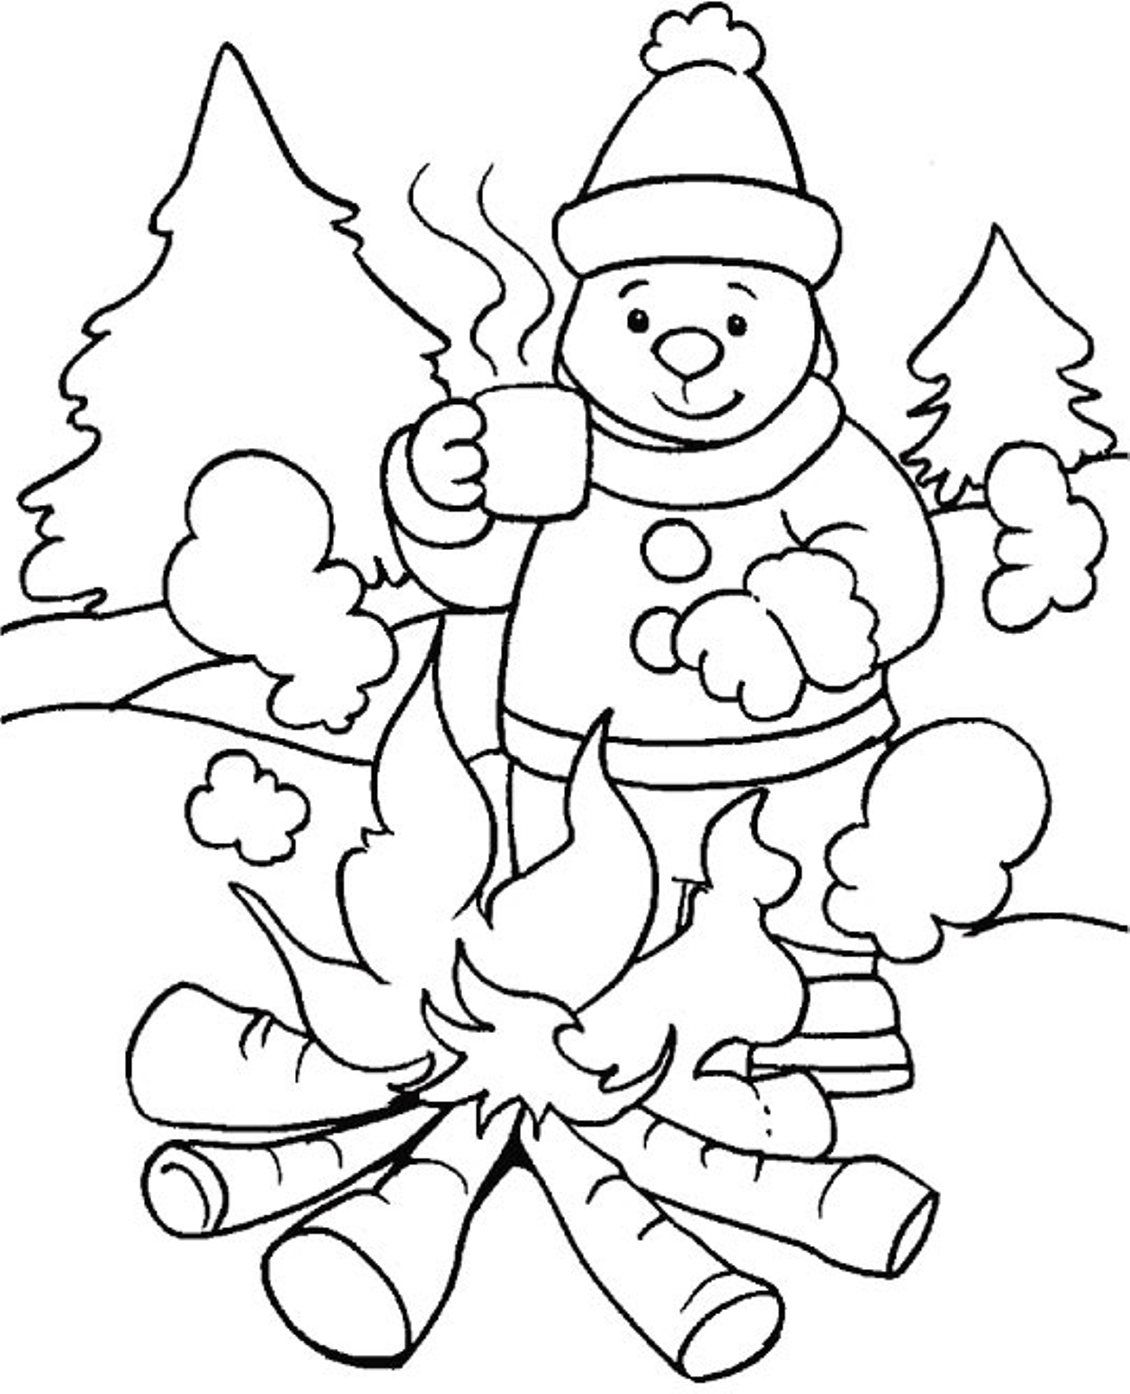 Childrens winter colouring pages - Winter Coloring Pages Uniquecoloringpages